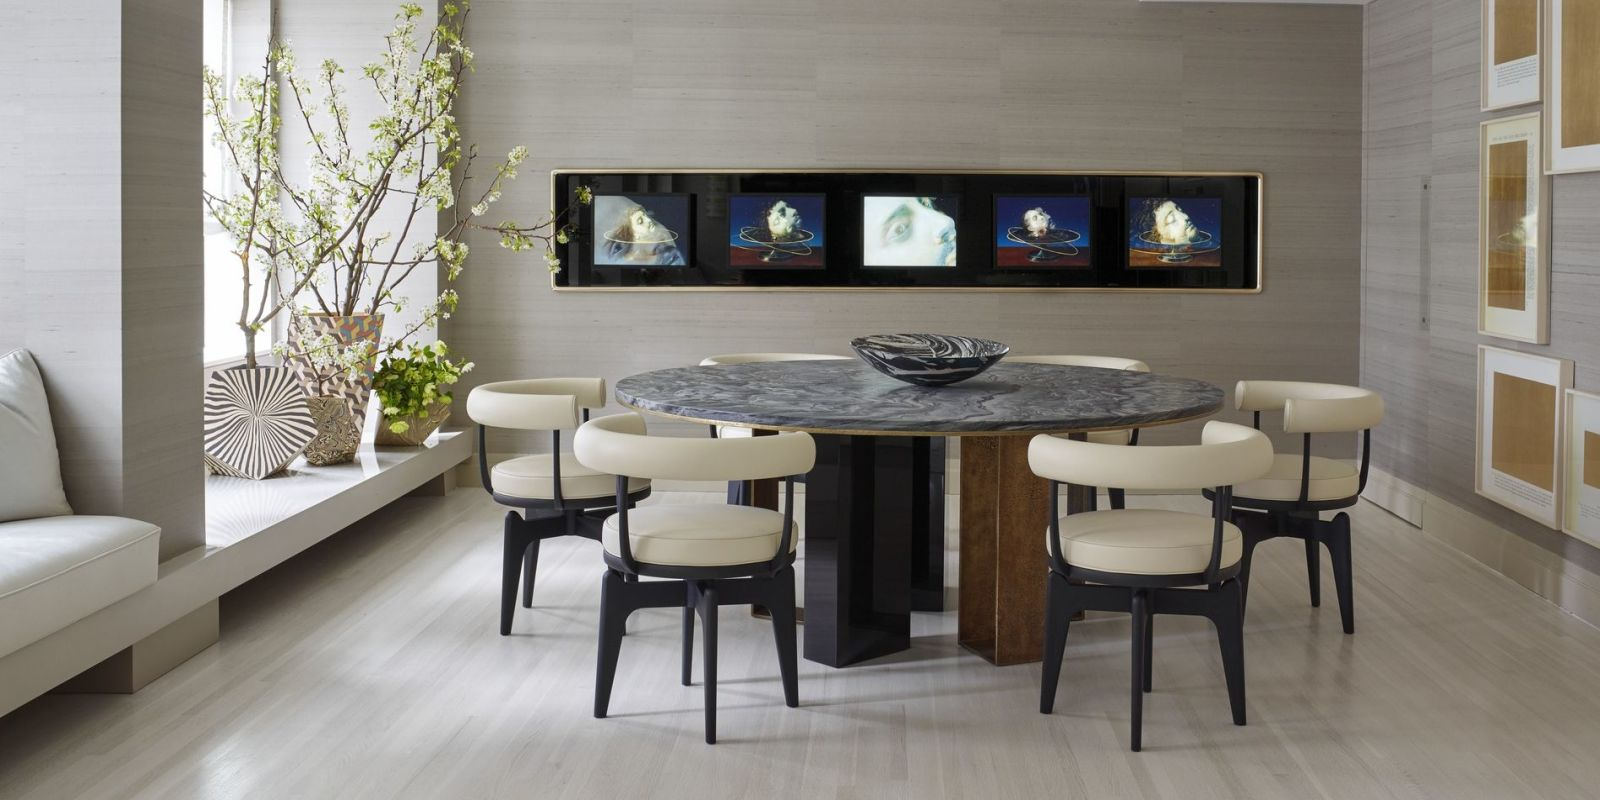 25 modern dining room decorating ideas contemporary for Modern dining area ideas